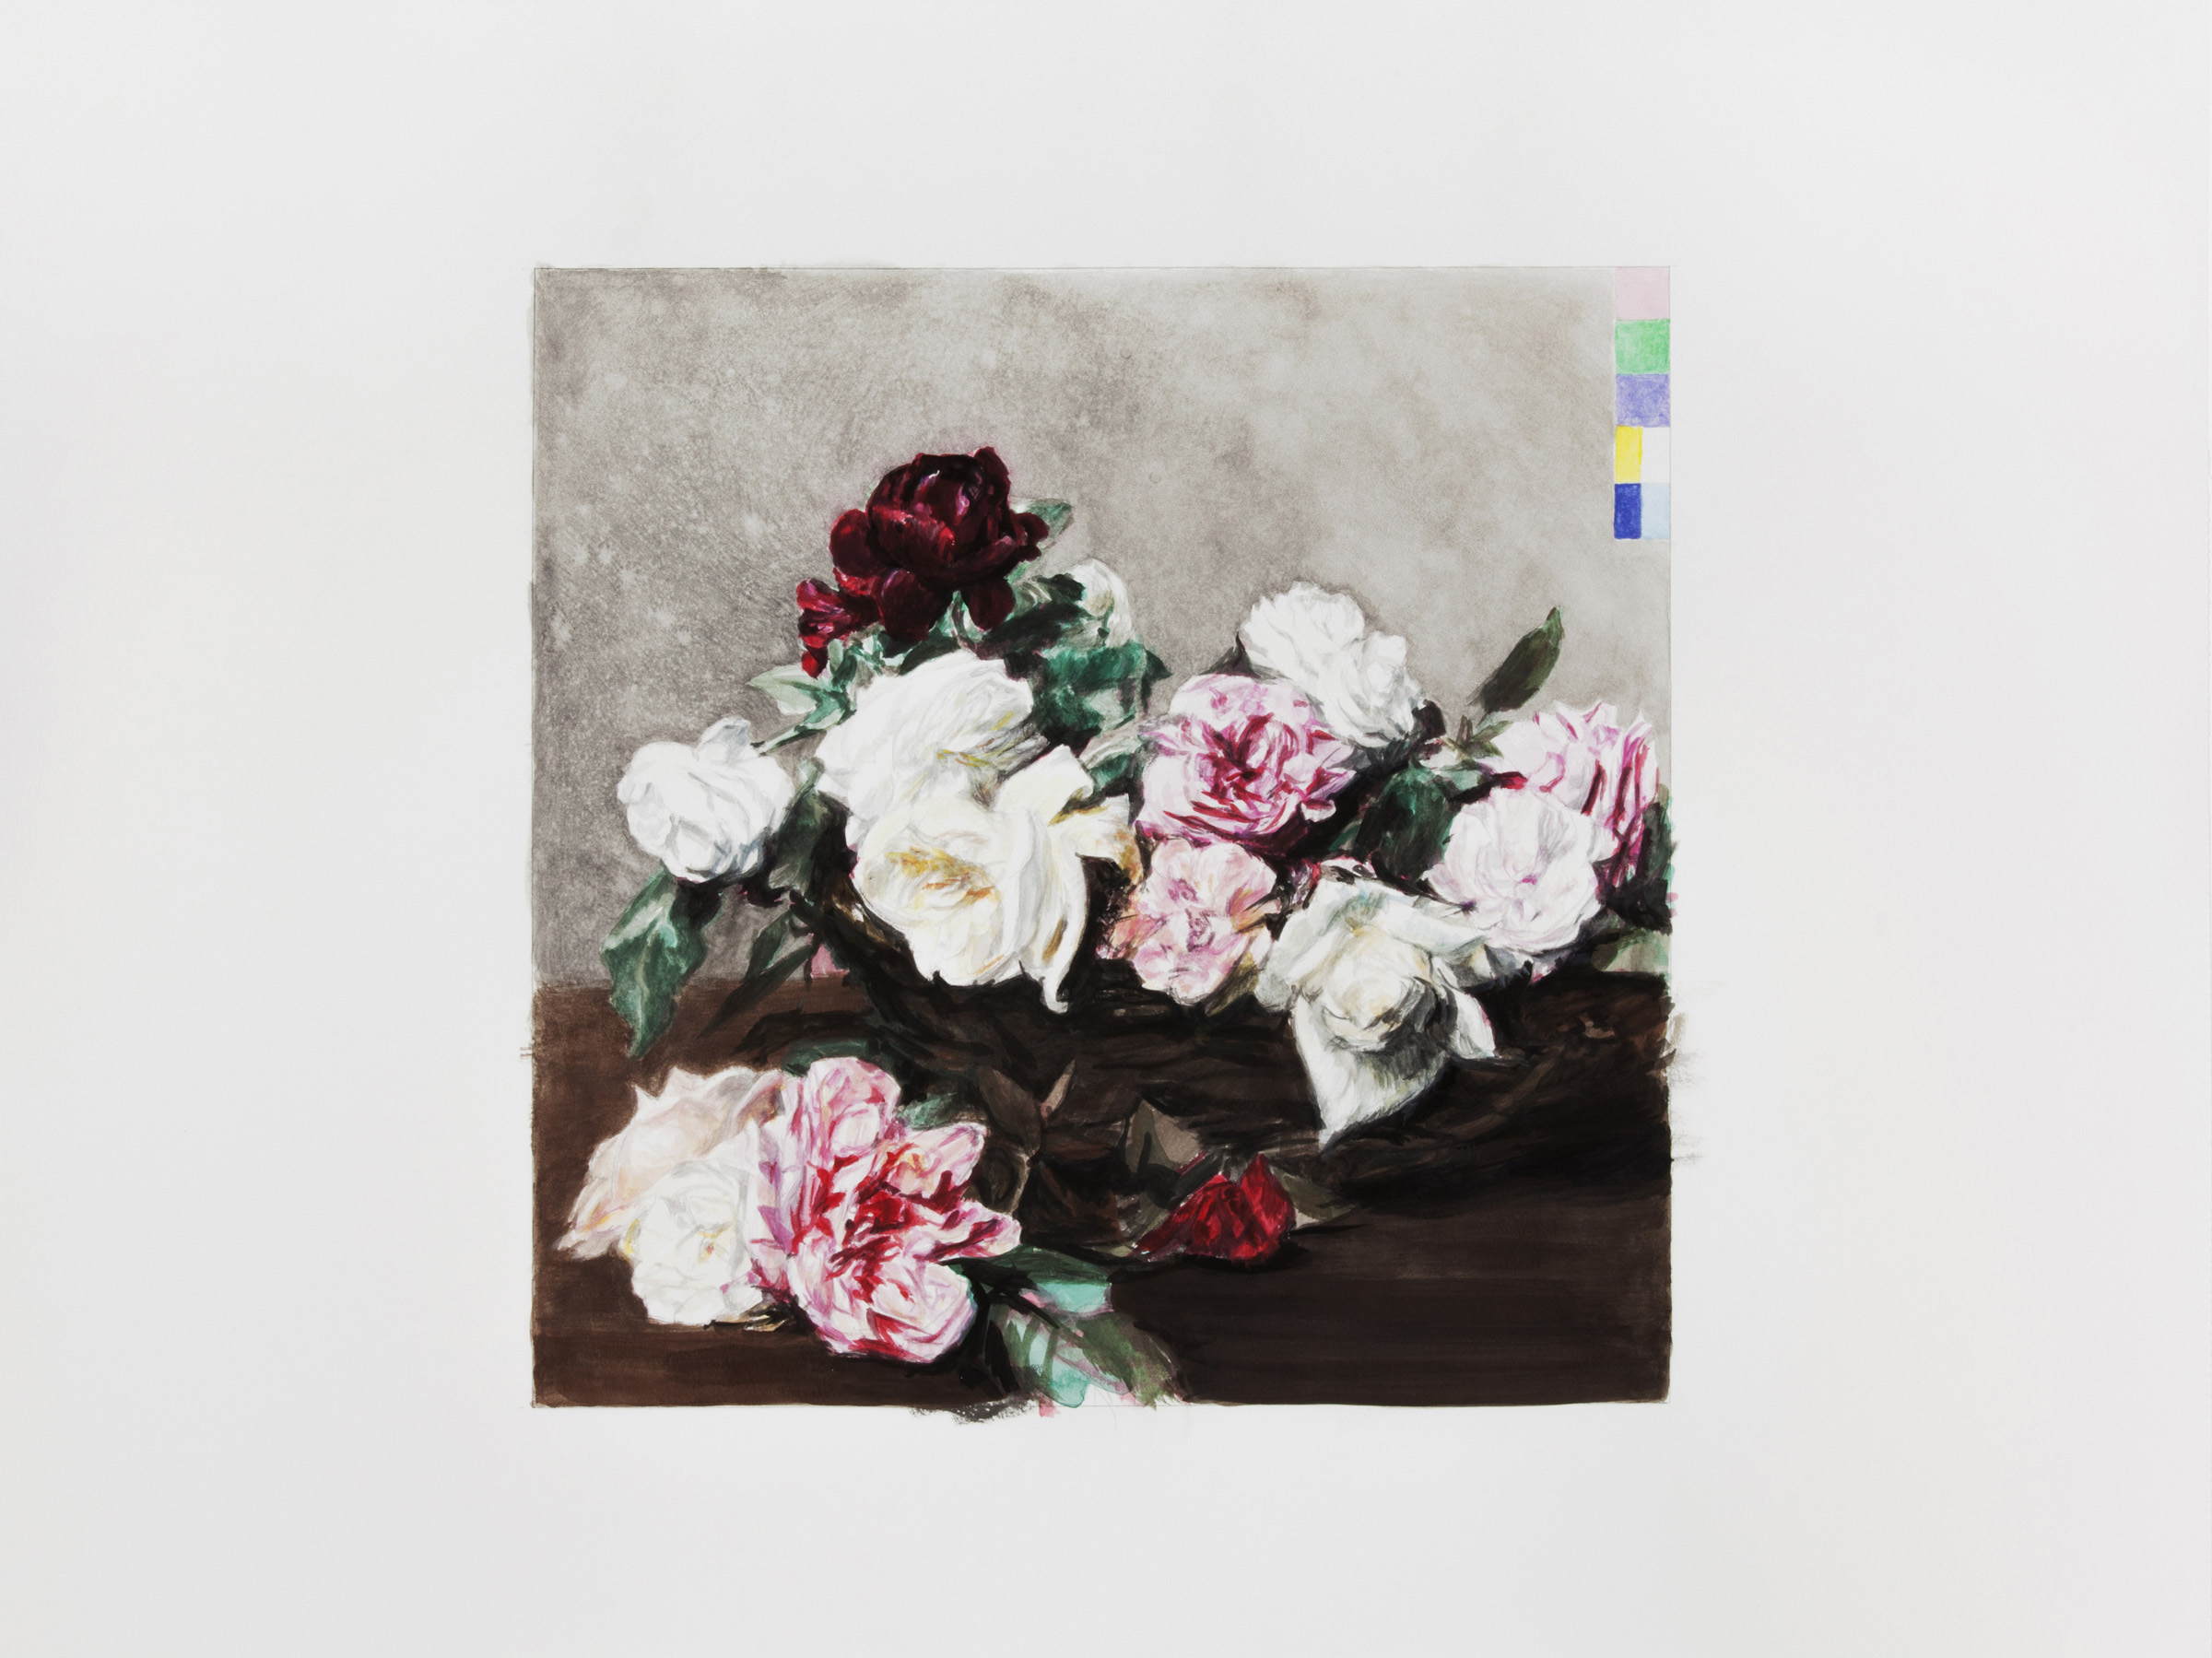 Power Corruption and Lies #4